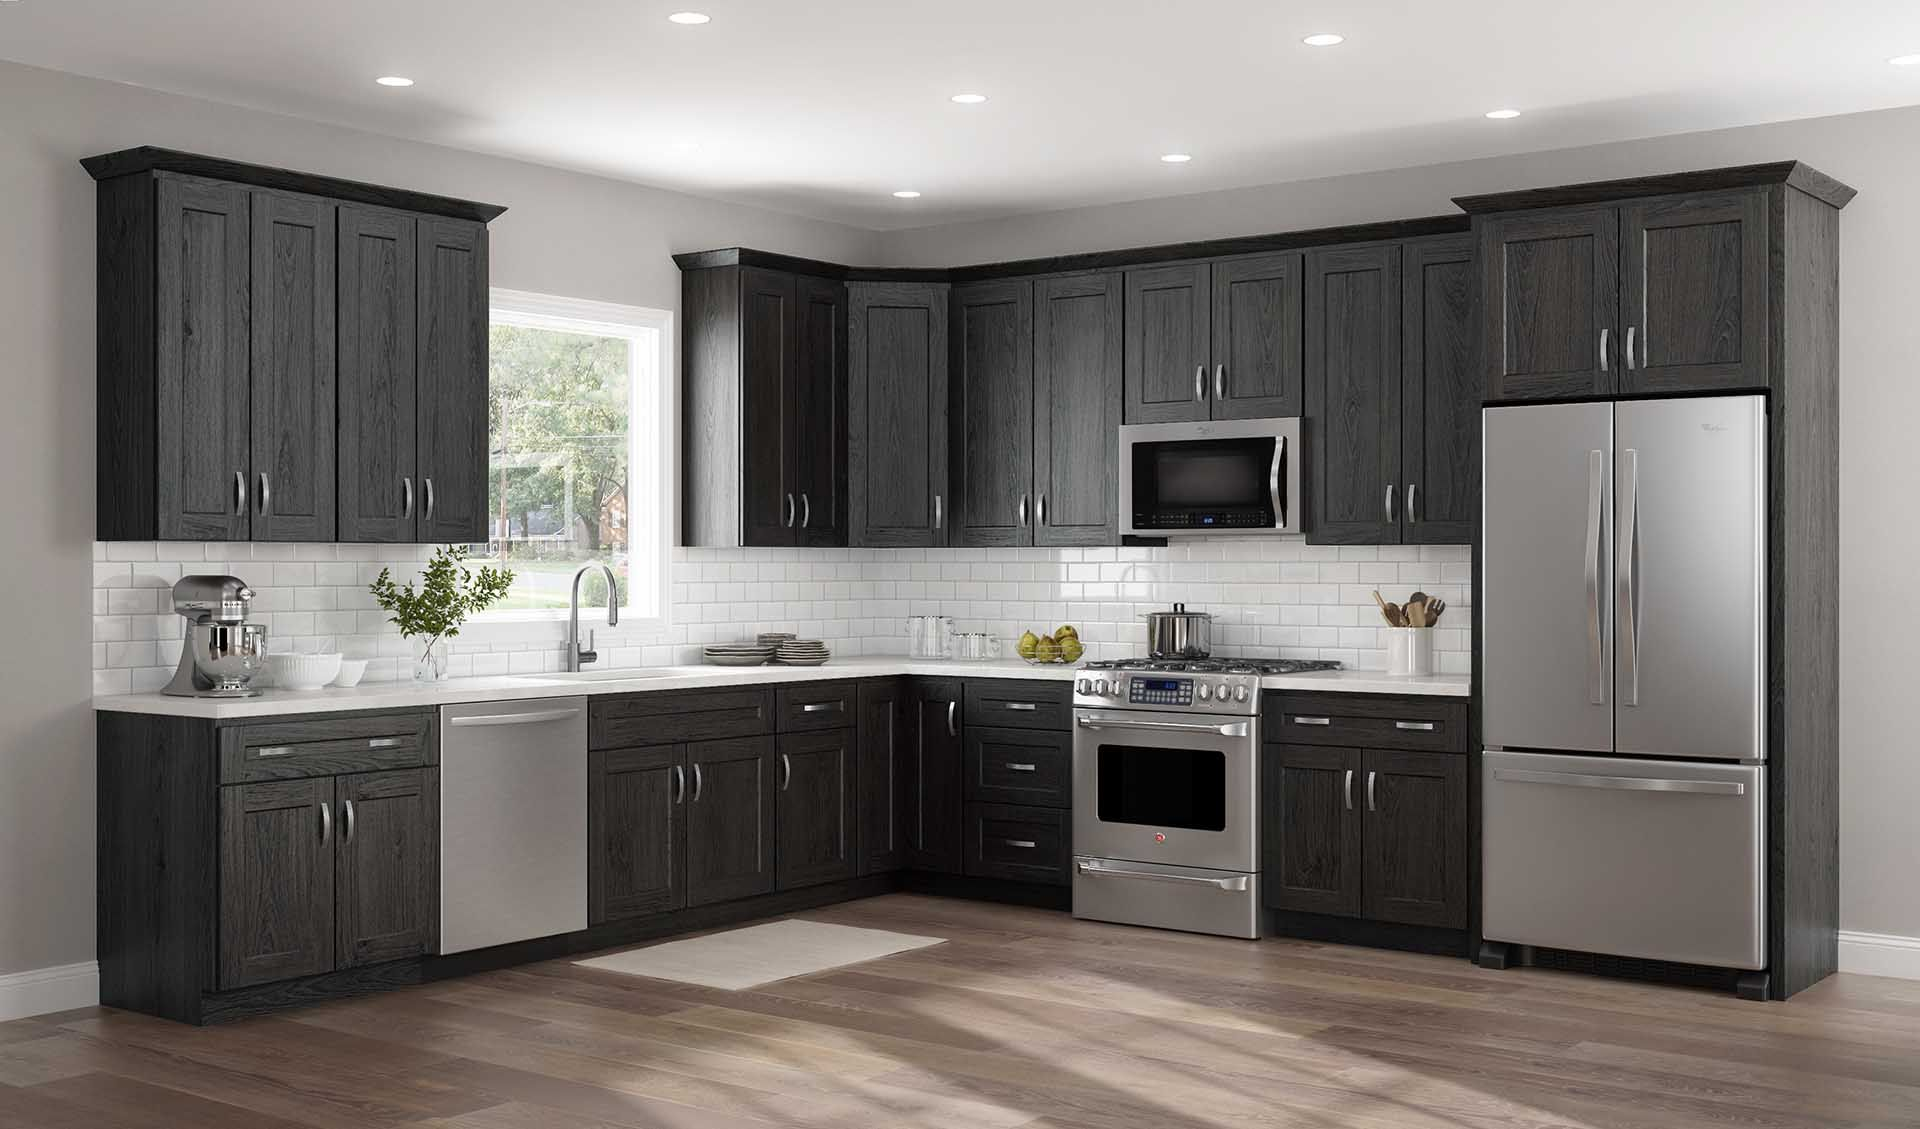 Kitchen Cabinets Kountry Cabinets Home Furnishings Slate Kitchen Slate Appliances Kitchen Home Depot Kitchen